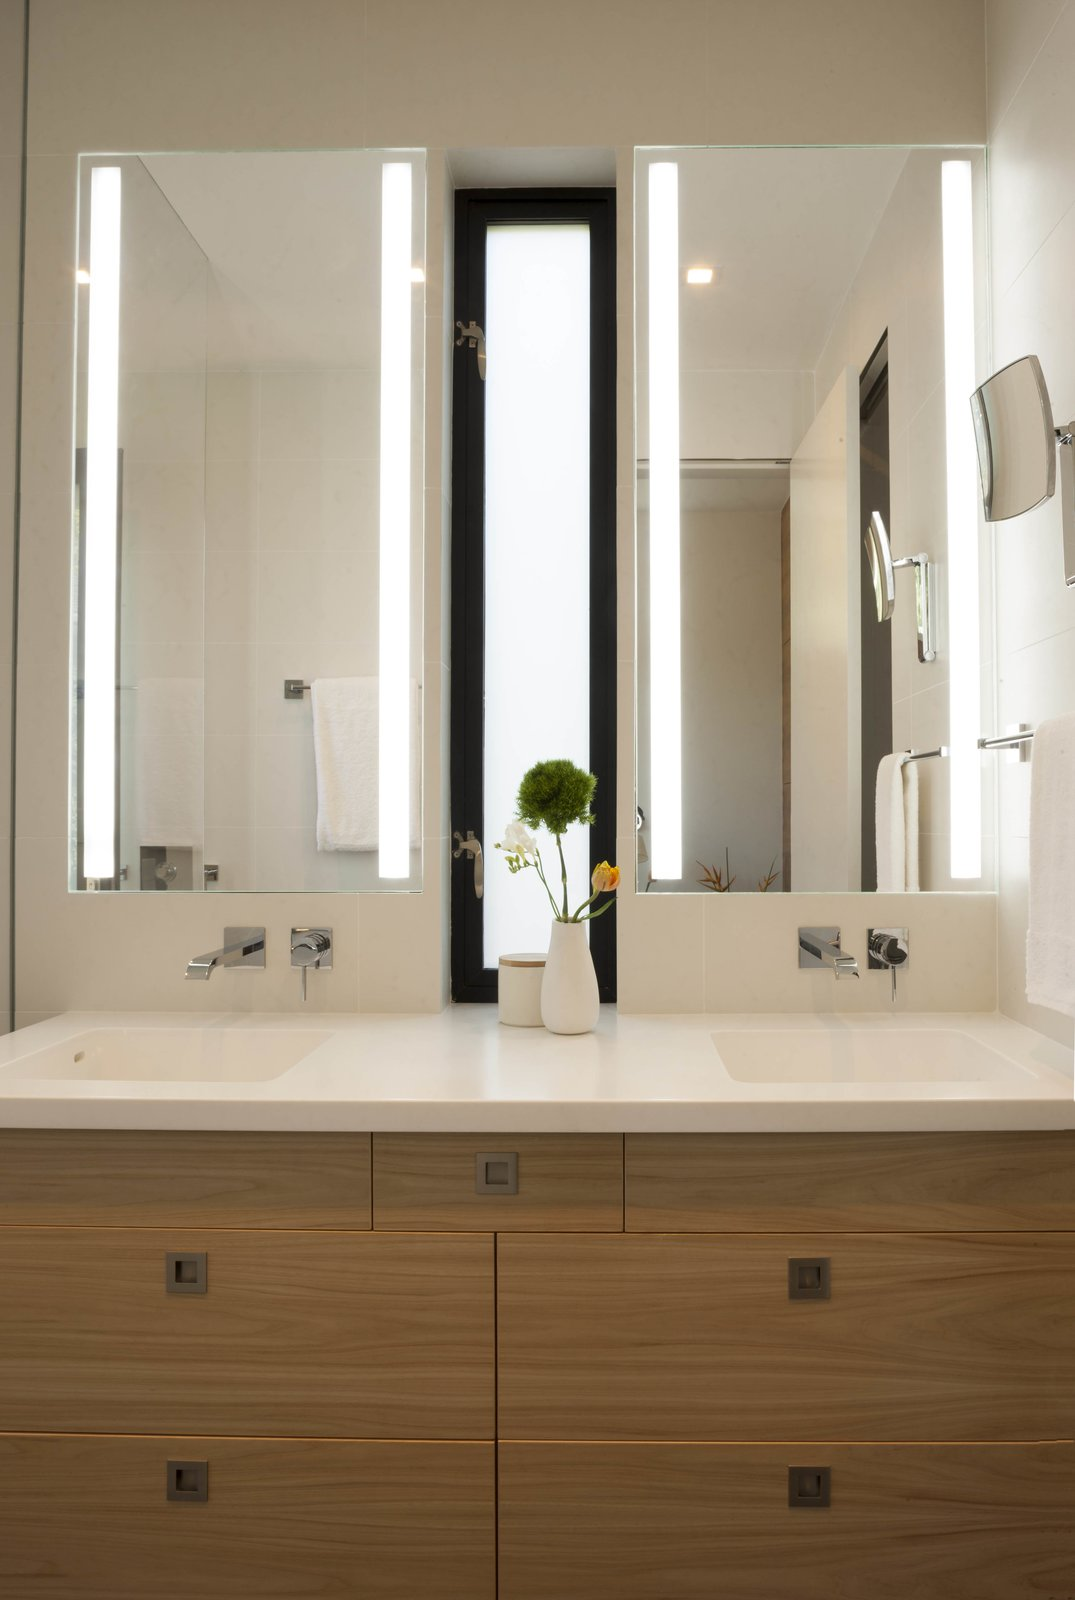 Bathroom vanity with integral Corian counter and sinks  Beverley Master Bedroom Suite Addition by Kathryn A. Rogers